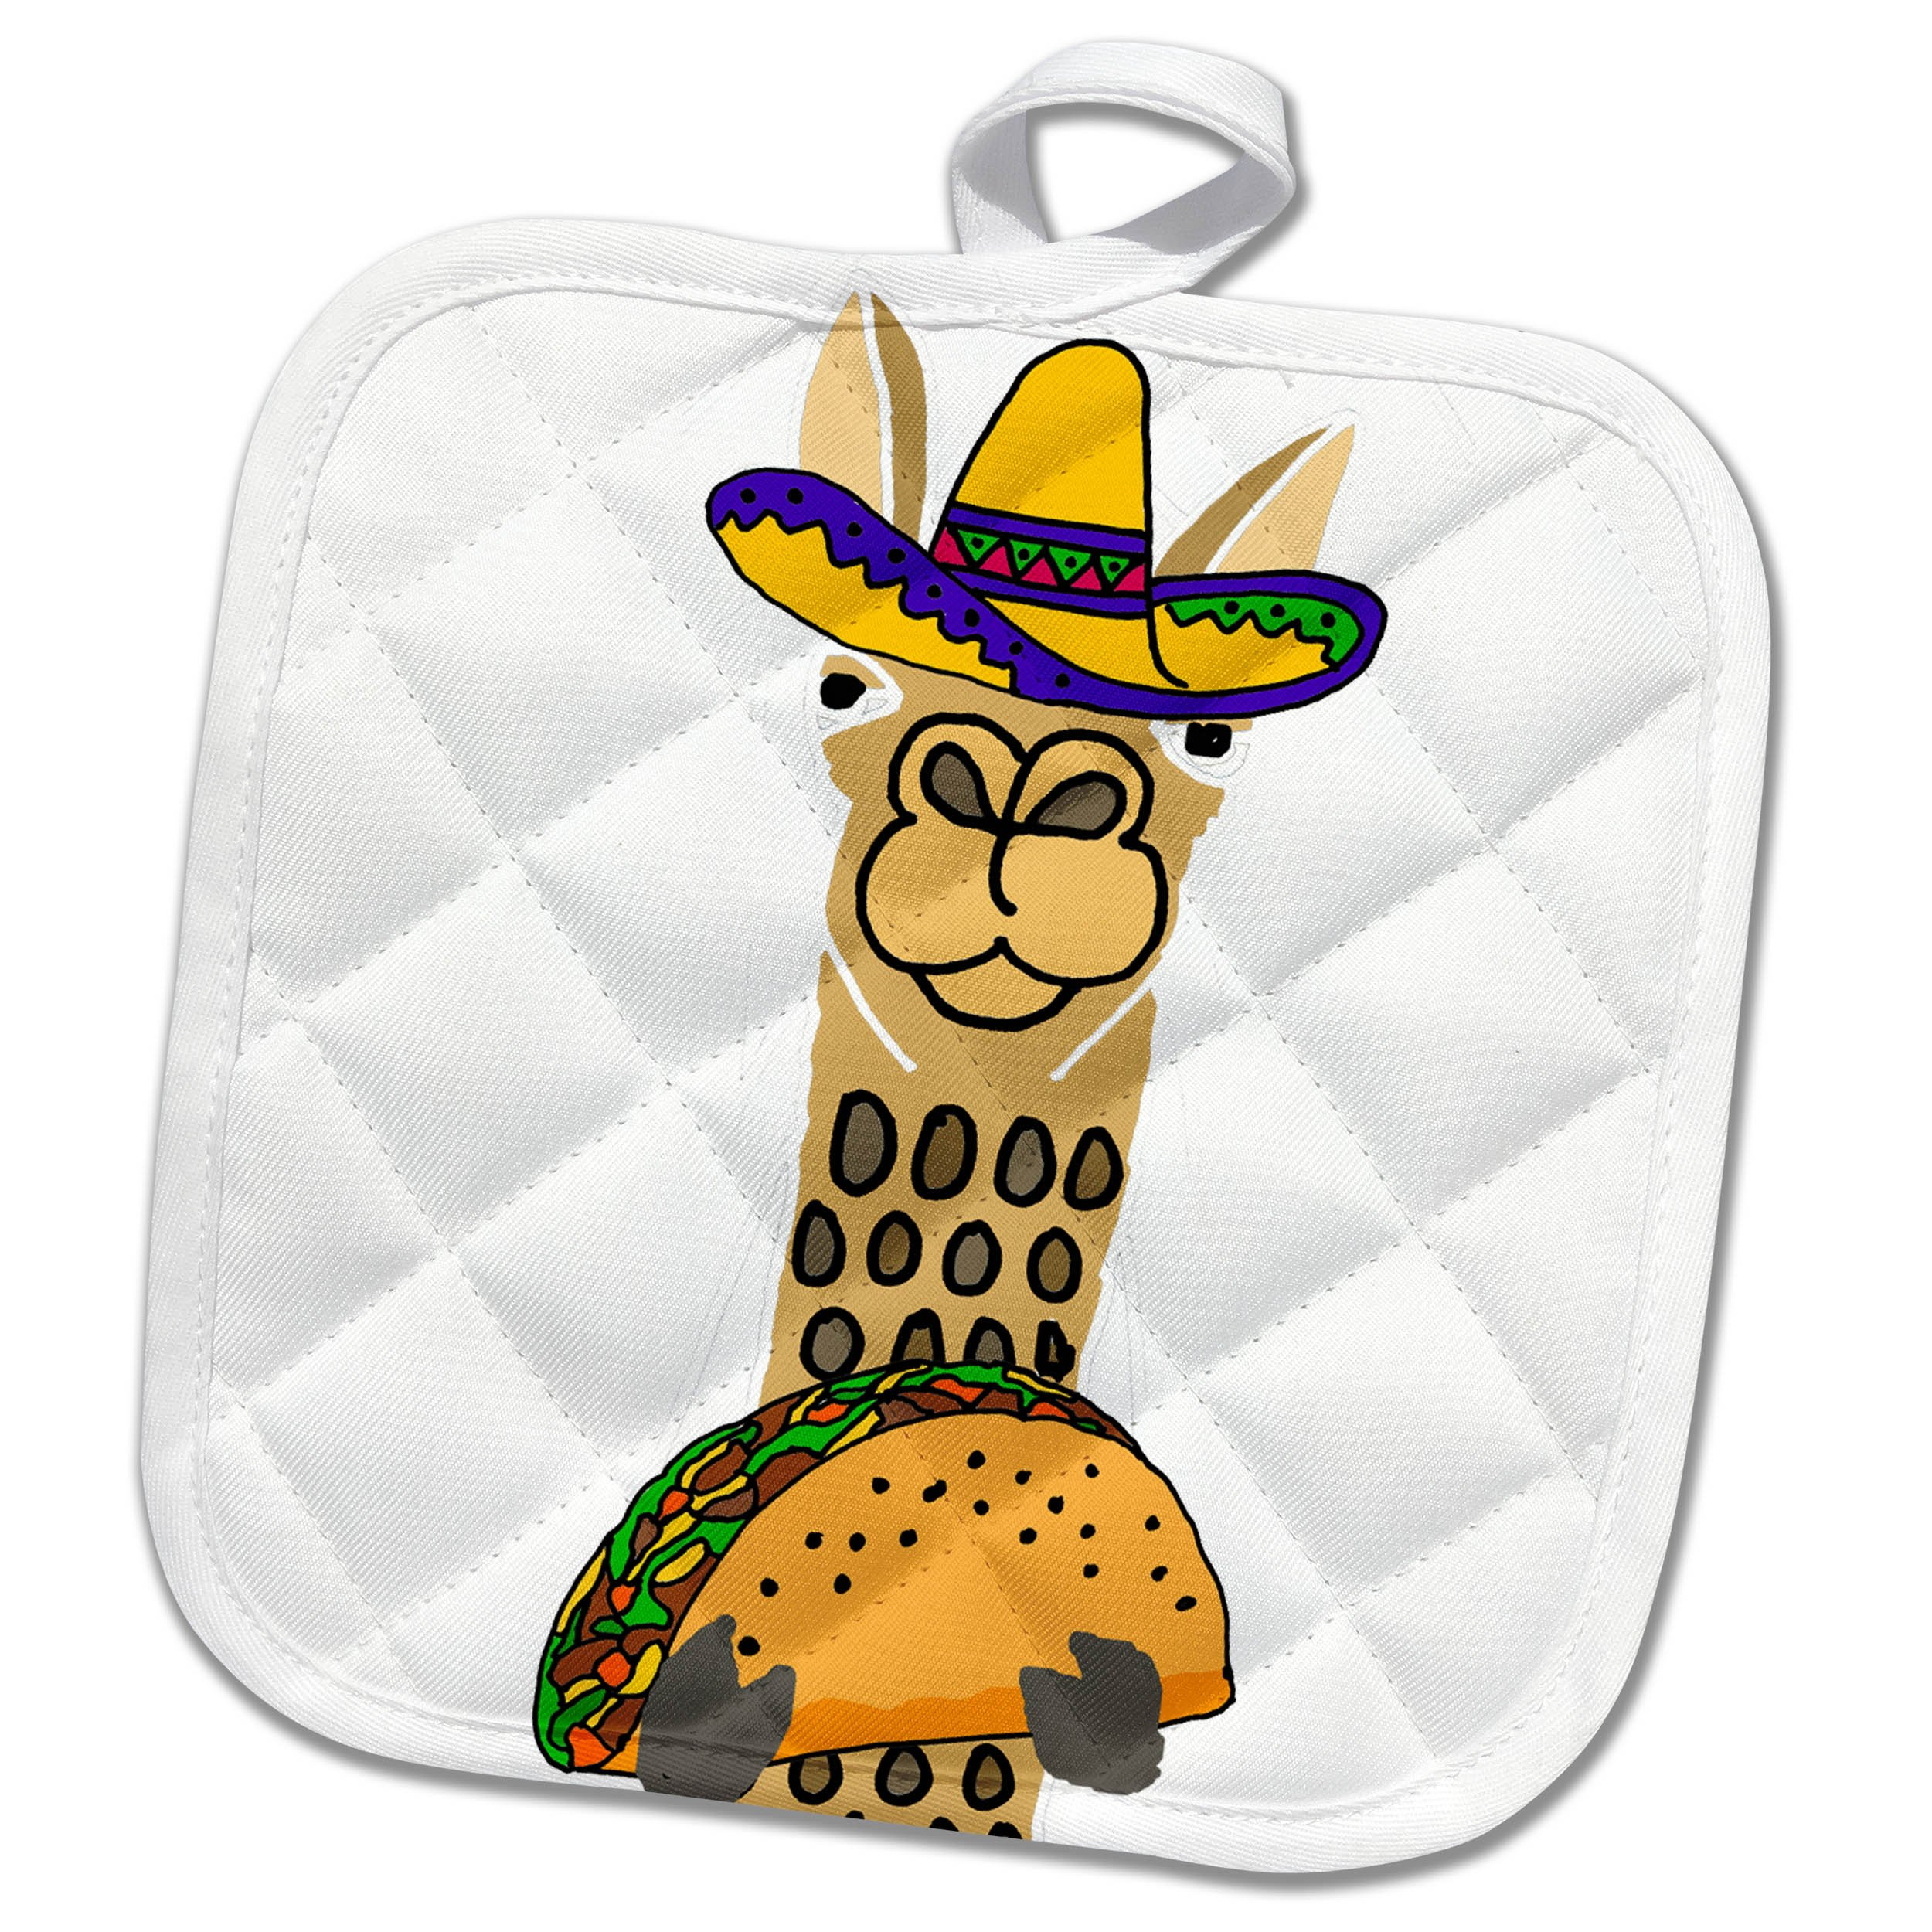 3dRose phl_263812_1 1 Pot Holder Funny Cute Llama Wearing Sombrero and Eating Taco Cartoon, 8 by 8'' by 3dRose (Image #1)